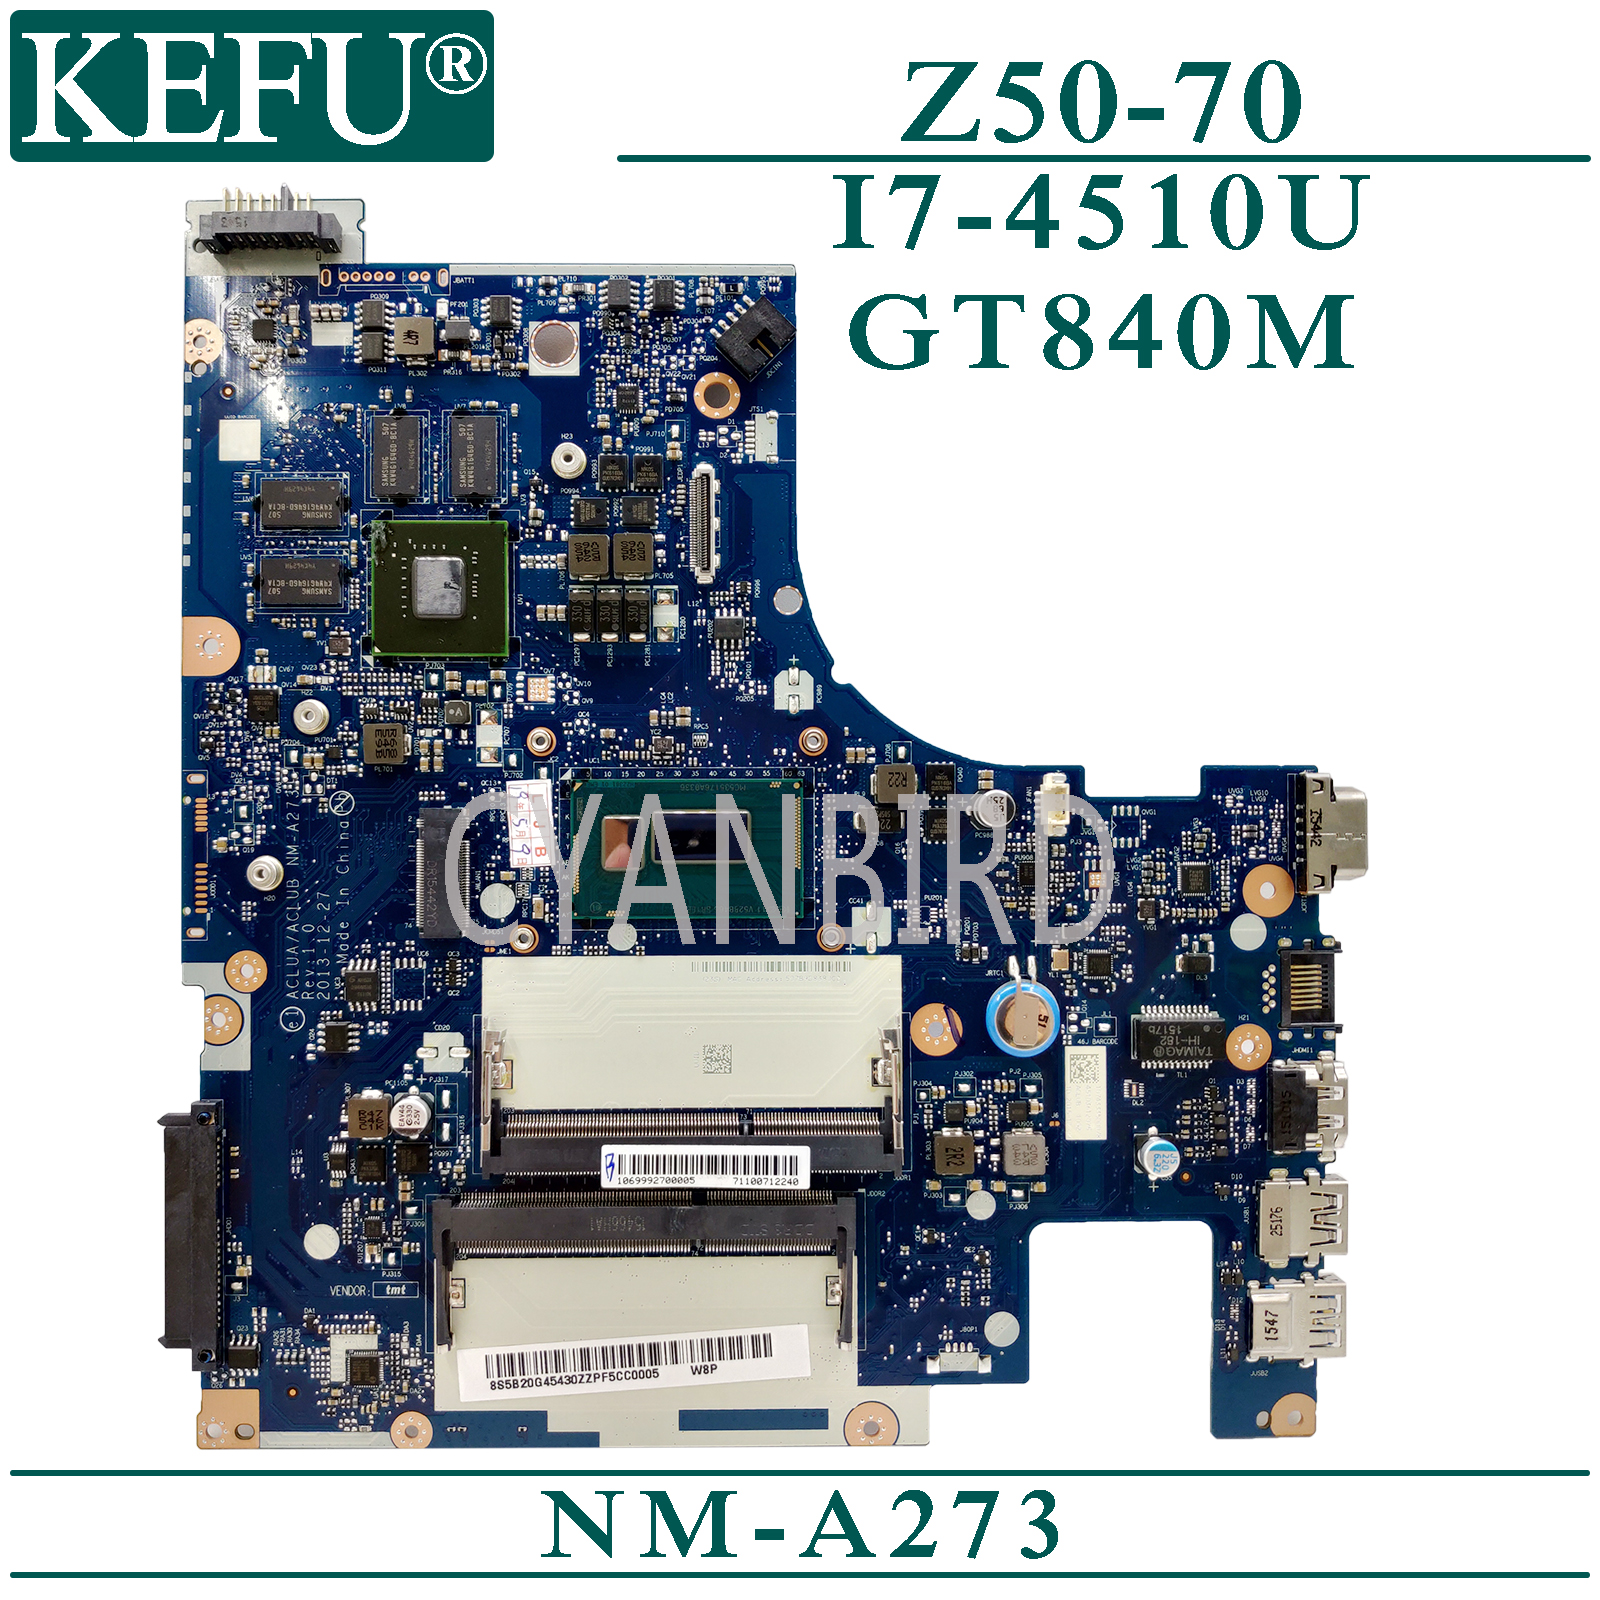 KEFU NM-A273 original mainboard for <font><b>Lenovo</b></font> <font><b>Z50</b></font>-<font><b>70</b></font> G50-70M with I7-4510U GT840M Laptop <font><b>motherboard</b></font> image